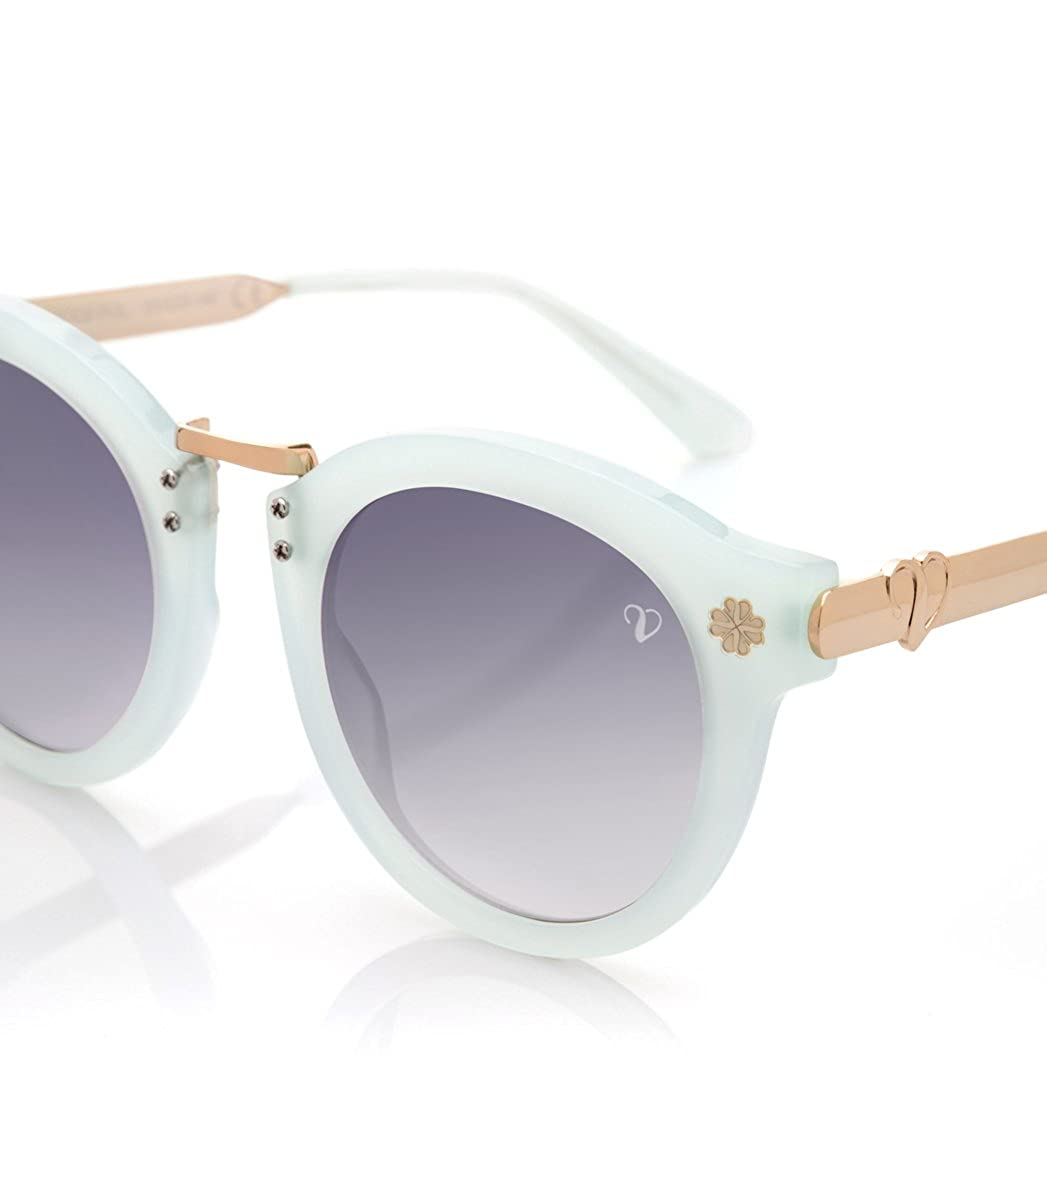 679915932b Starlite Women''s Gafas de sol Chic Valeria Mazza, Turquesa Sunglasses,  Turquoise, 51: Amazon.co.uk: Clothing